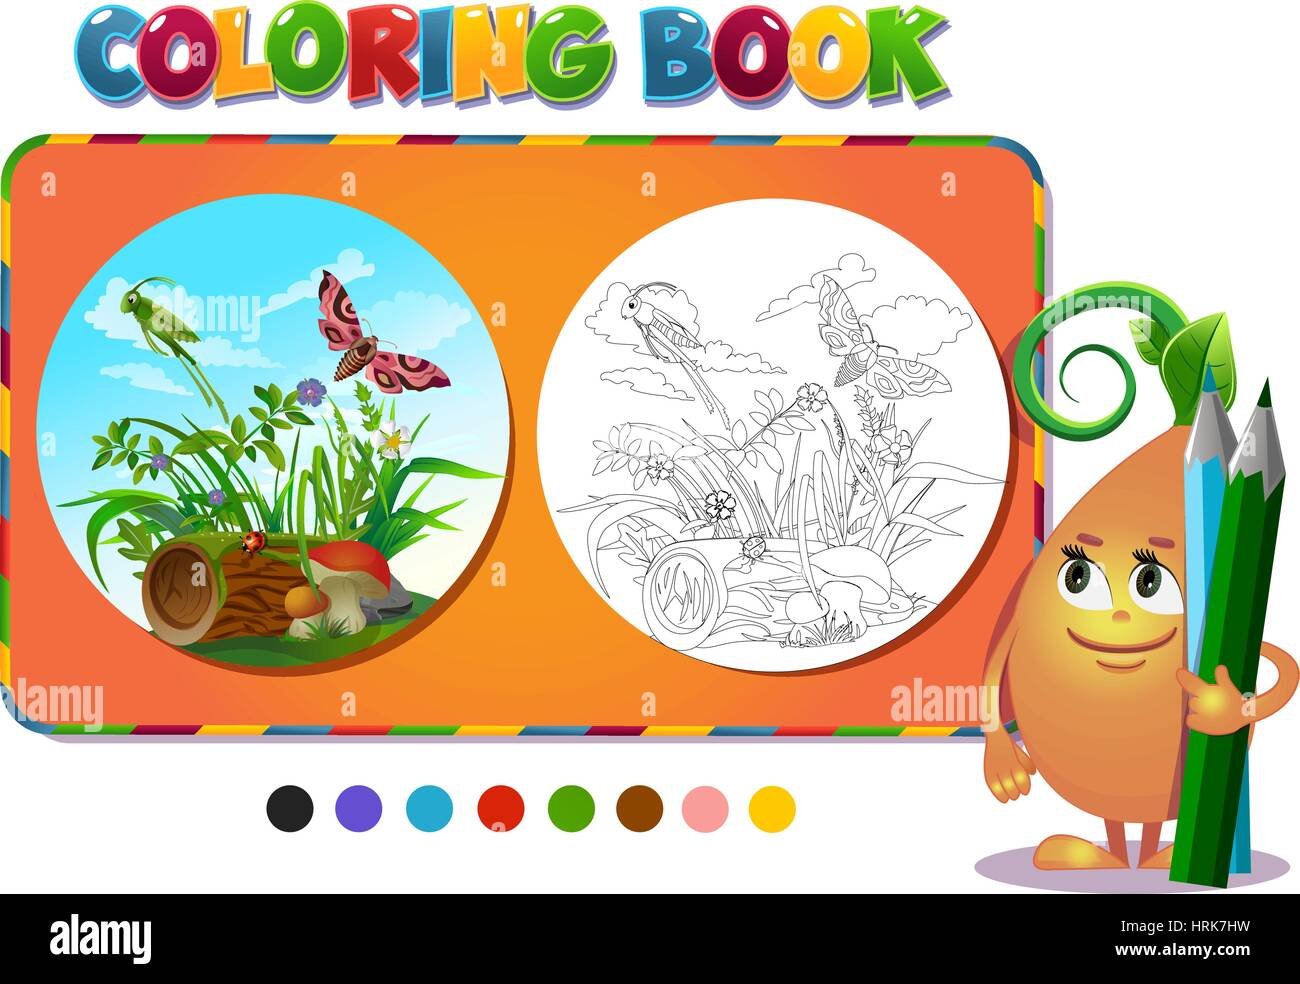 Coloring book insects in the forest glade - vector illustration. - Stock Image